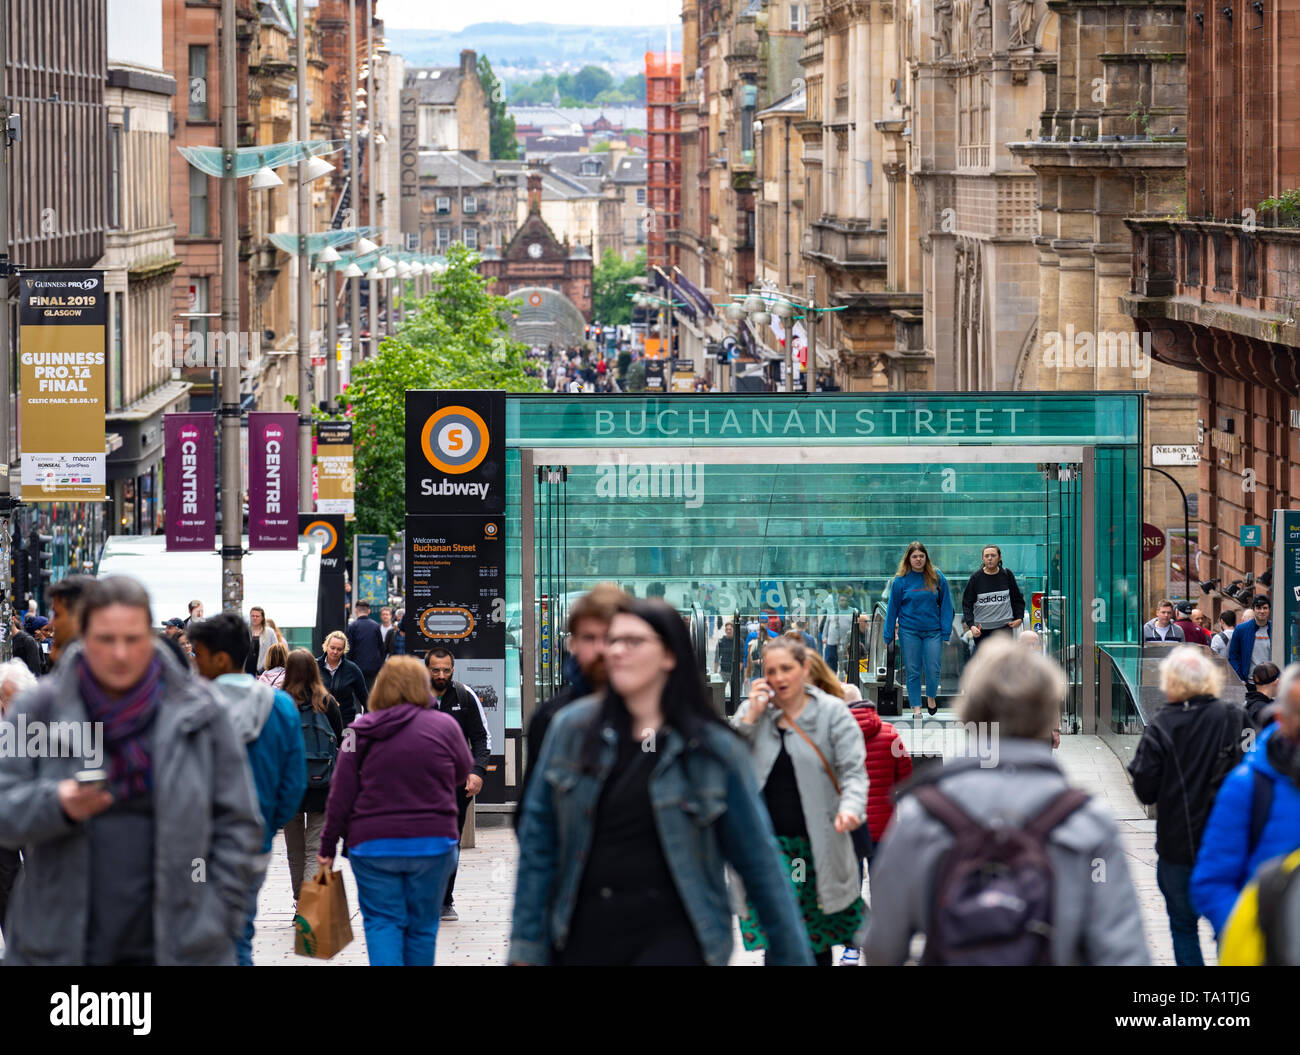 View of shoppers and shops on Buchanan Street the main pedestrian shopping street in Glasgow, Scotland, UK - Stock Image